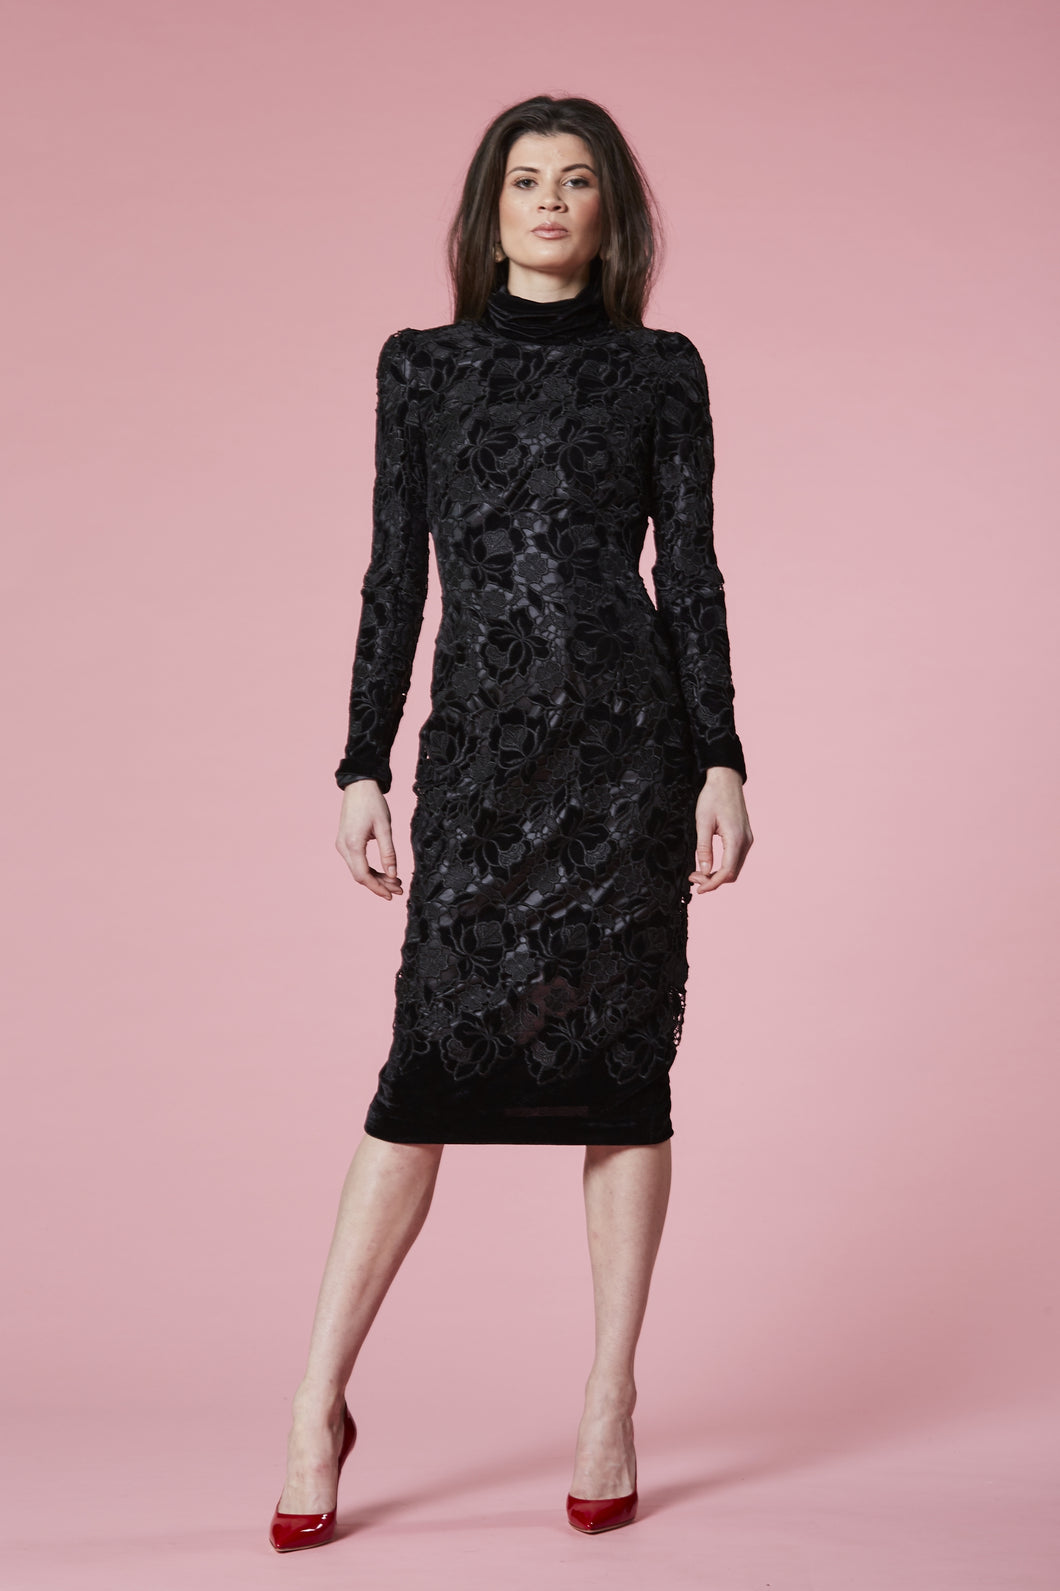 Black lace devore dress